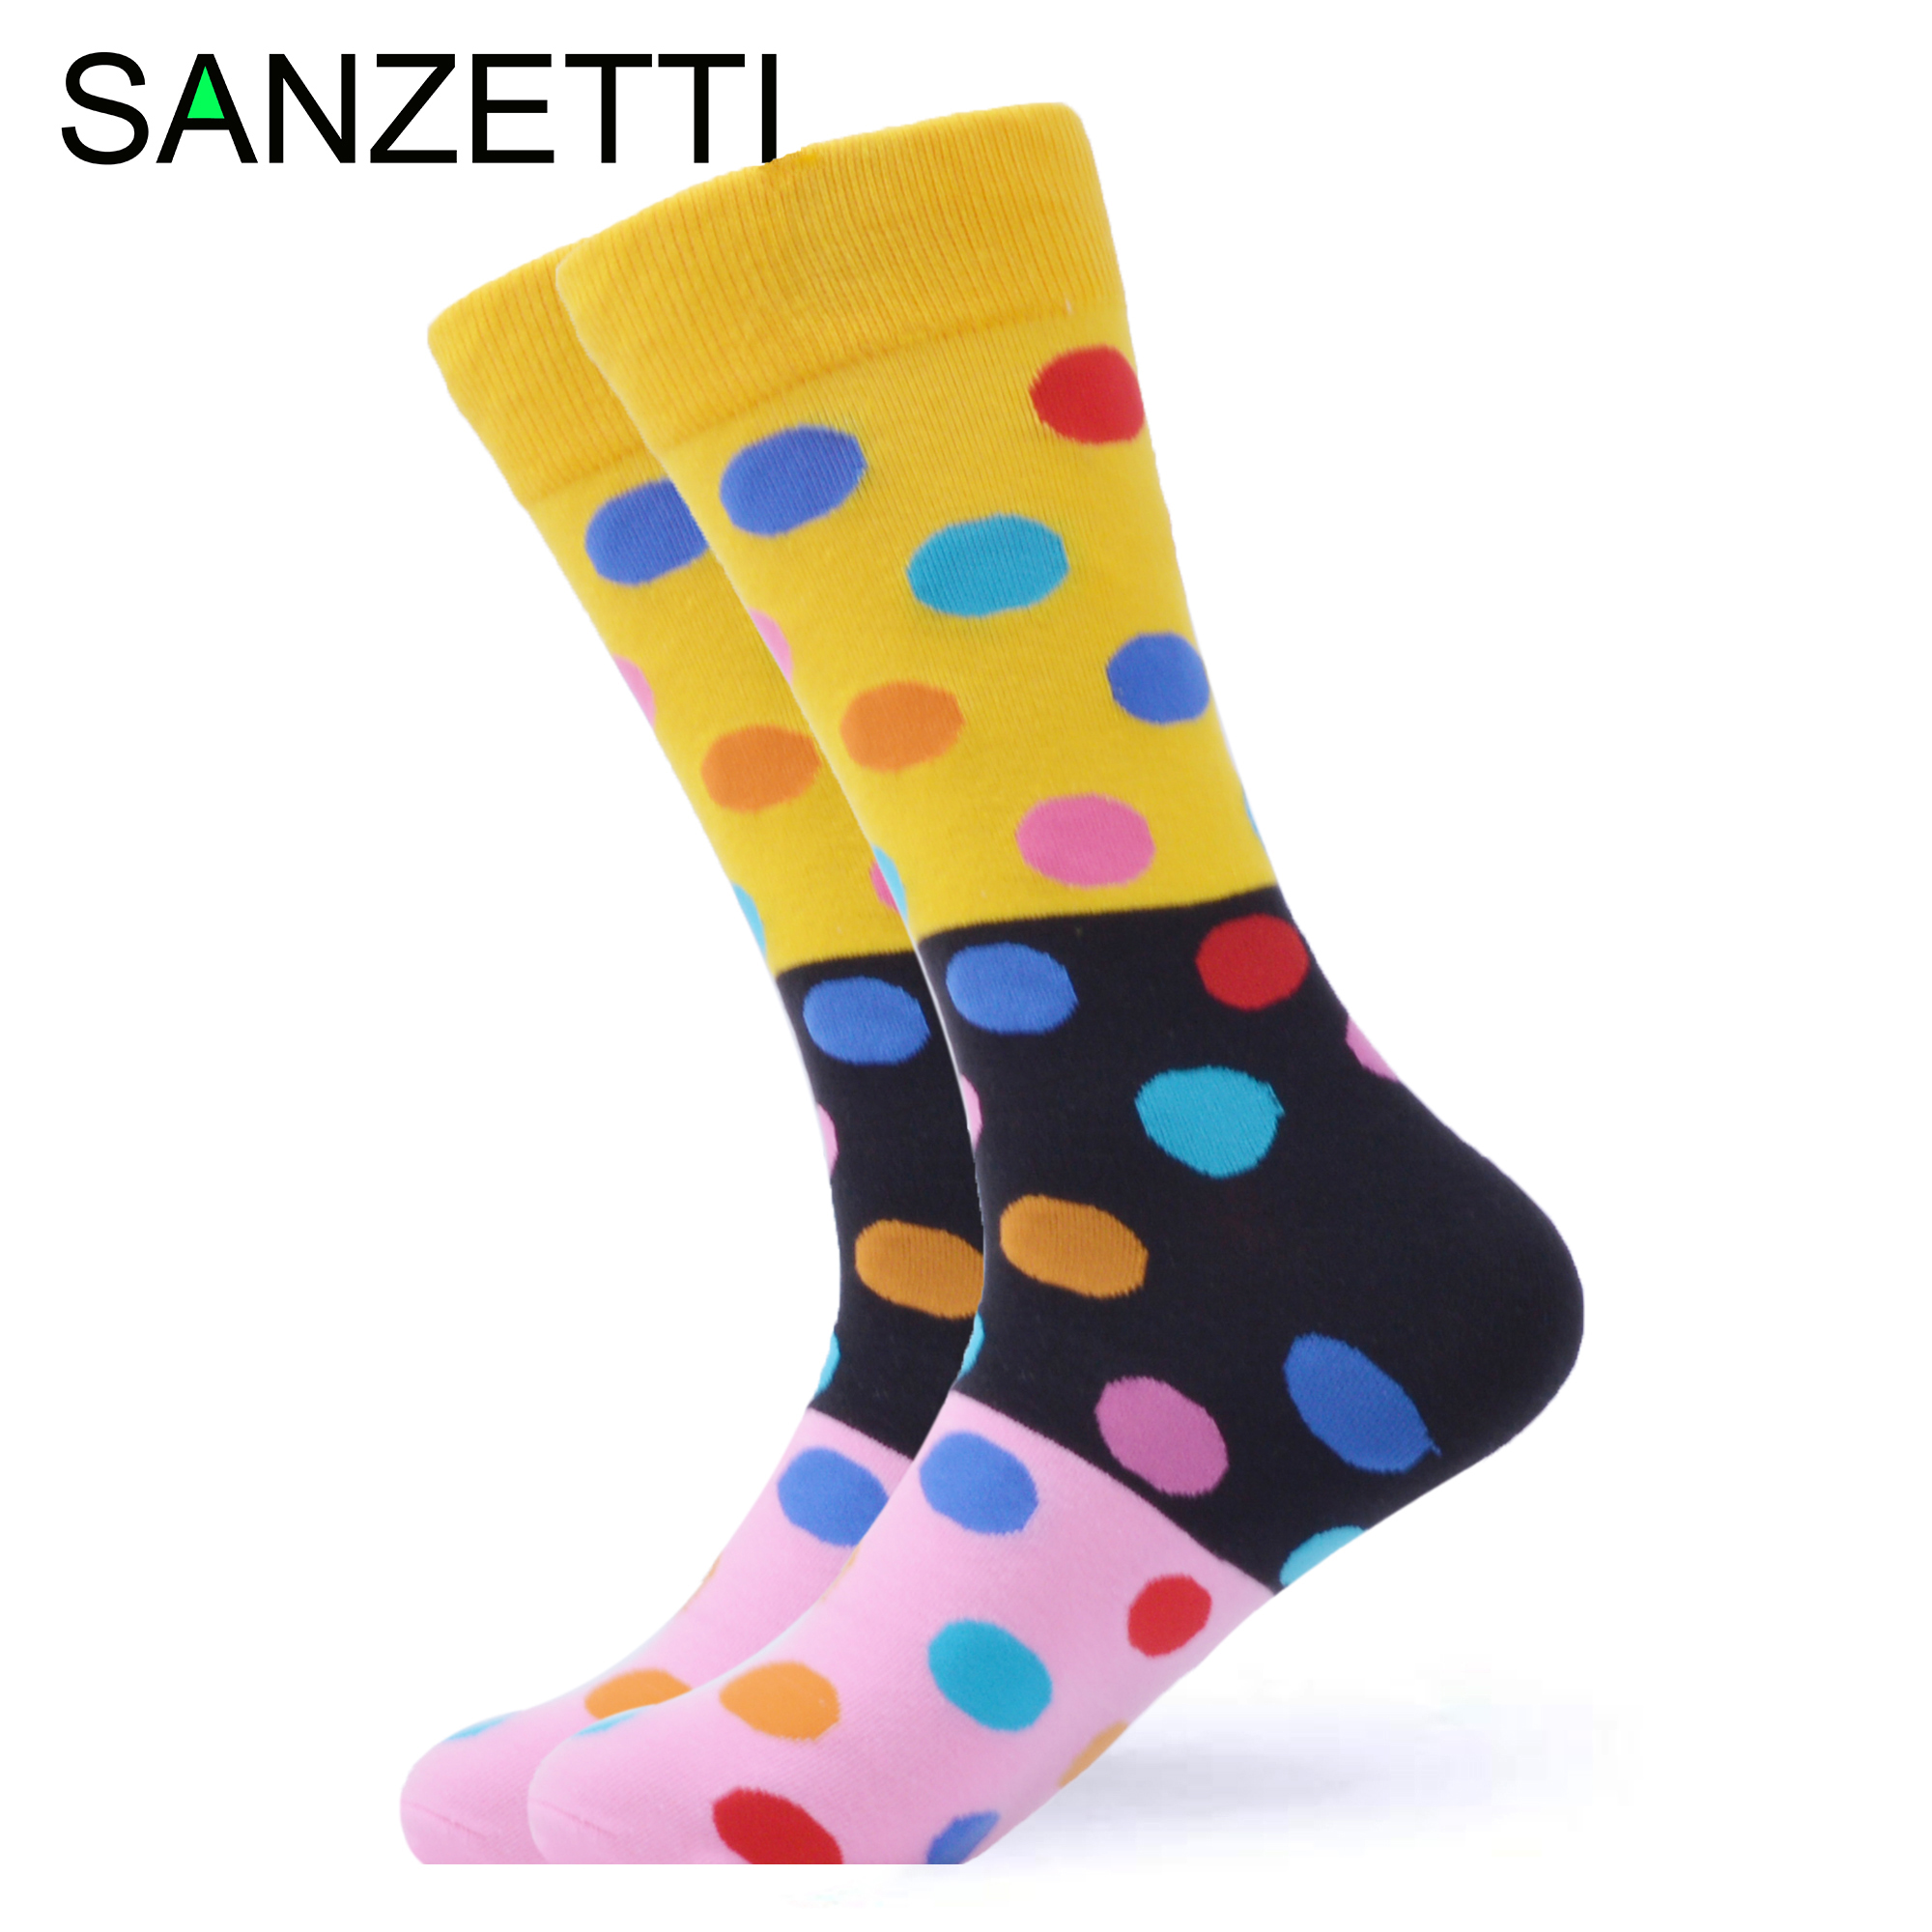 SANZETTI 1 Pair New Happy Socks High Quality Men's Colorful Wave Point Comfortable Combed Cotton Fun  Gift Wedding Dress Socks